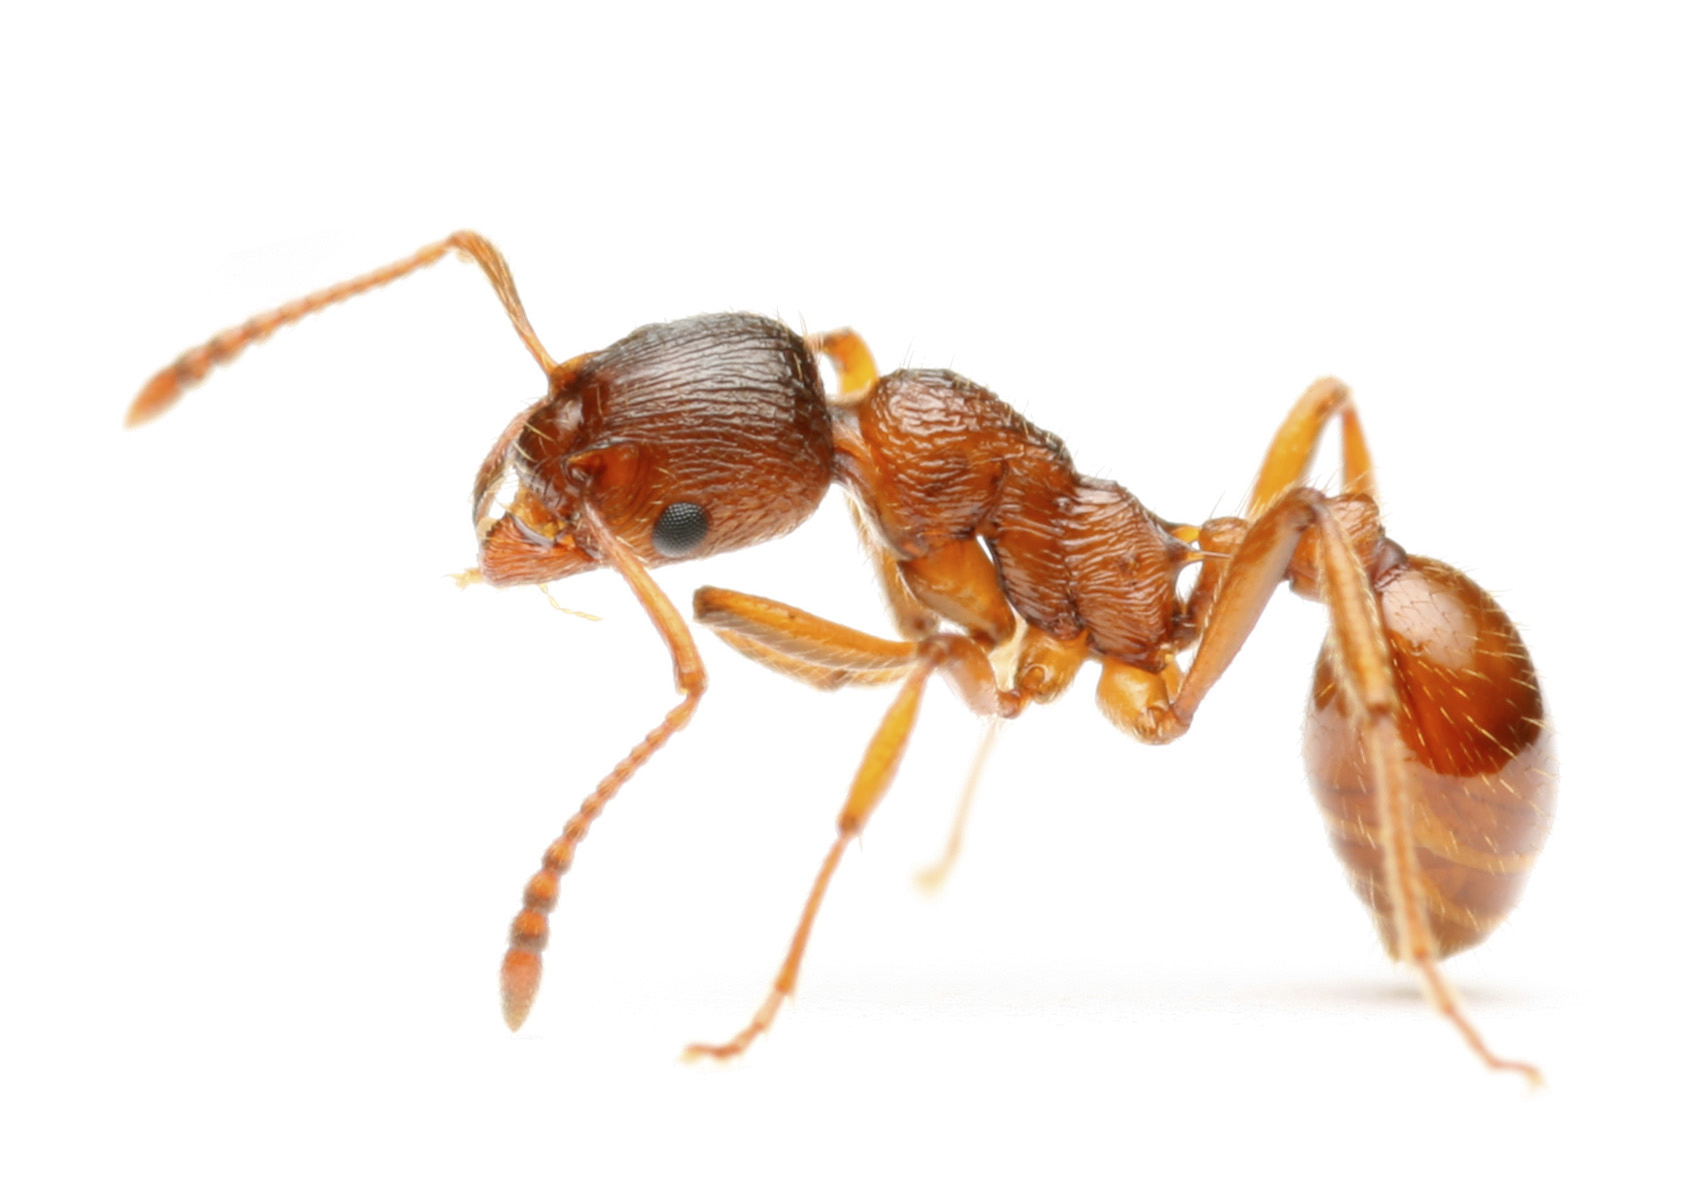 Fire Ants Attack a Tampa Man in SUV, Causing Vehicle to ...